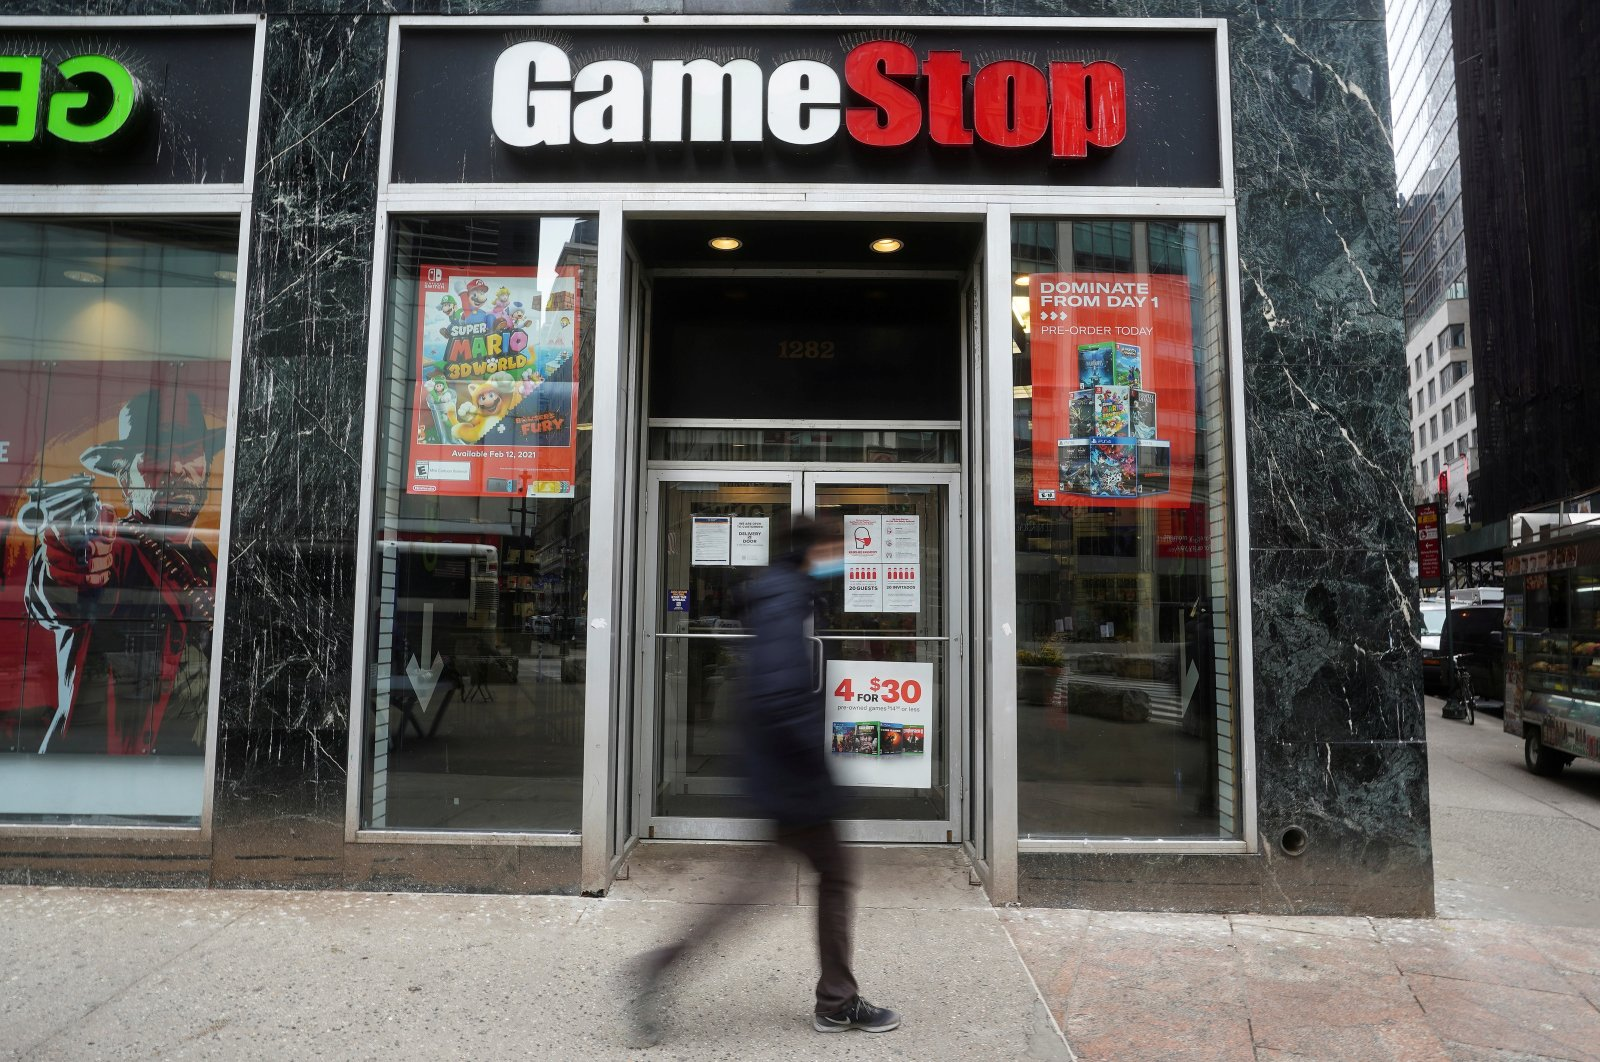 A GameStop store is pictured amid the pandemic in the Manhattan borough of New York City, New York, U.S., Jan. 27, 2021. (Reuters Photo)